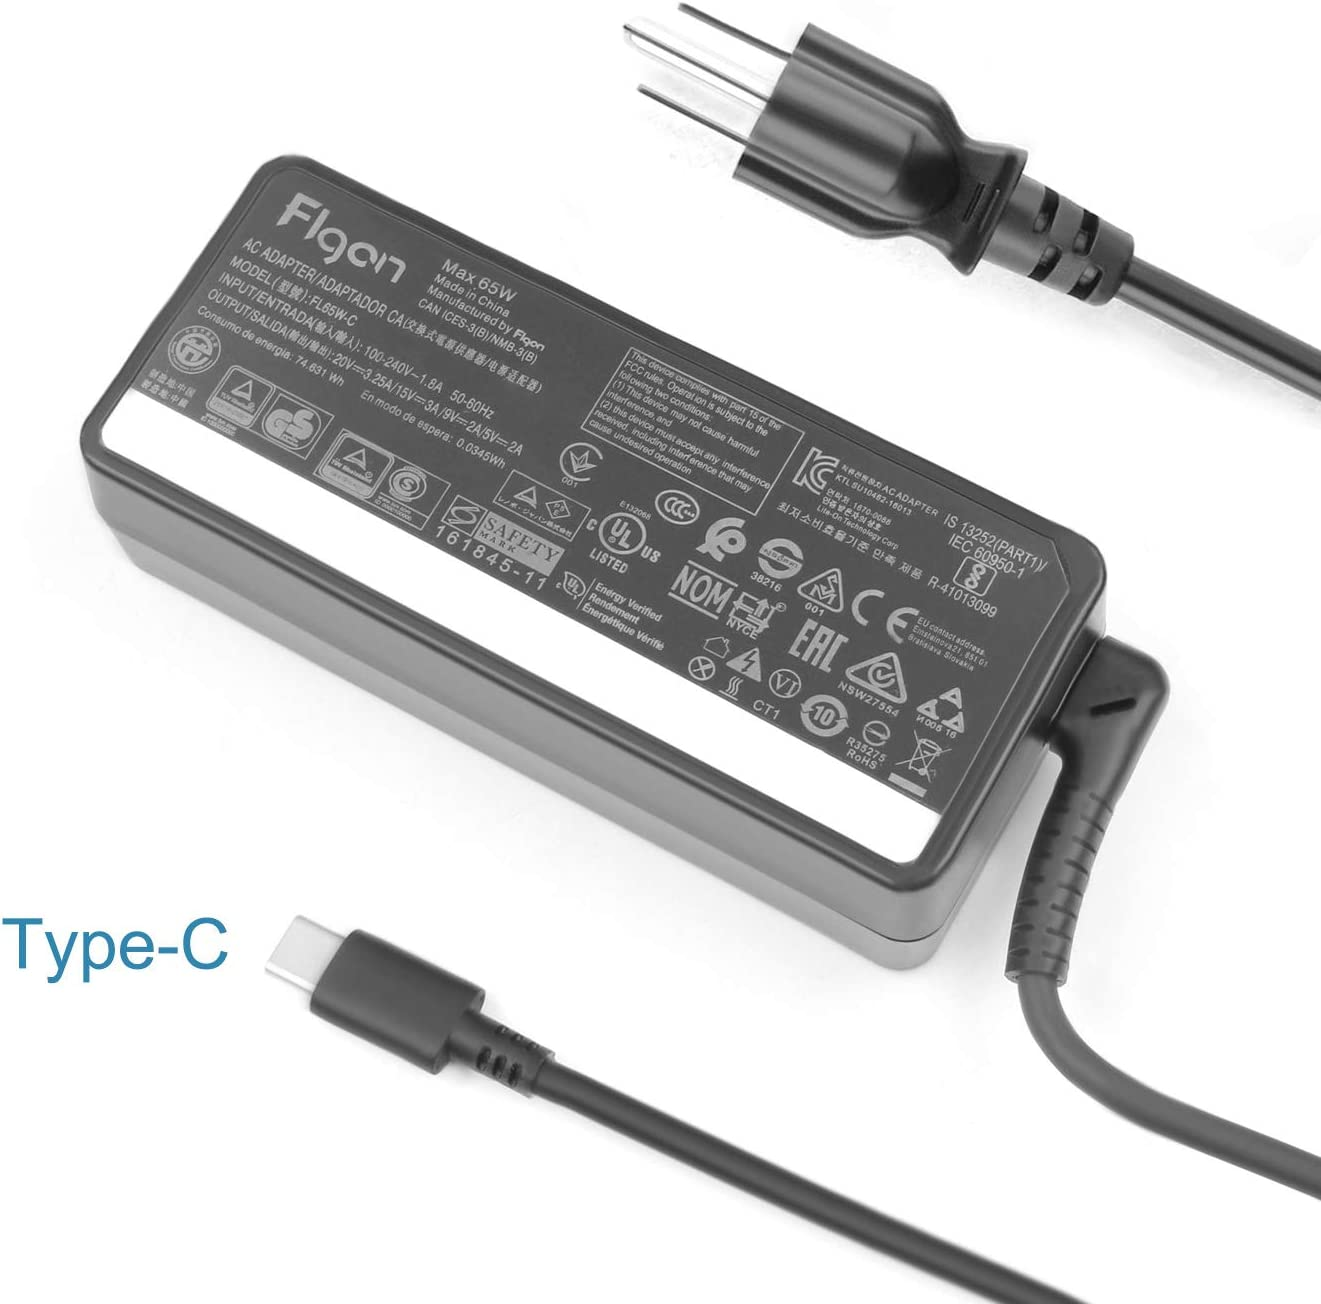 65W 45W USB-C Laptop Charger for Lenovo Yoga 920 C930 S940 S730 730-13IKB ThinkPad t490 t490s t590 p52s t480 t480s t580 t580p X1 Carbon 7th 5 6th Gen adlx65ylc3a adlx65ycc2a adlx65yac2a adlx65ydc3a